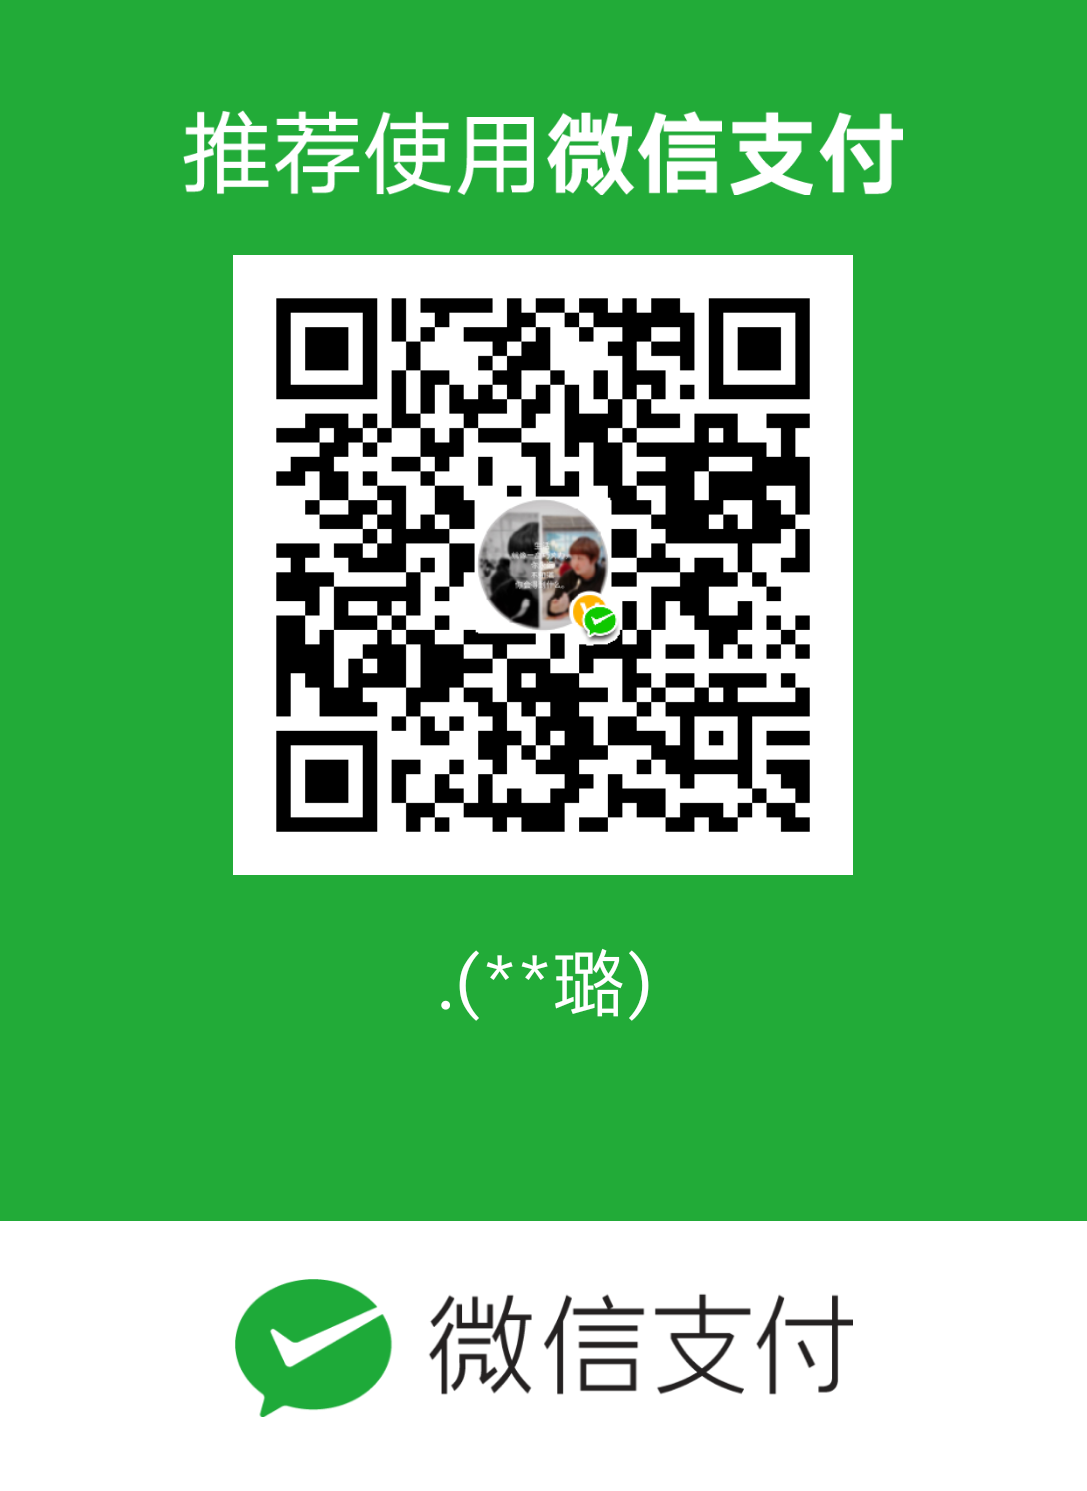 Lauren WeChat Pay